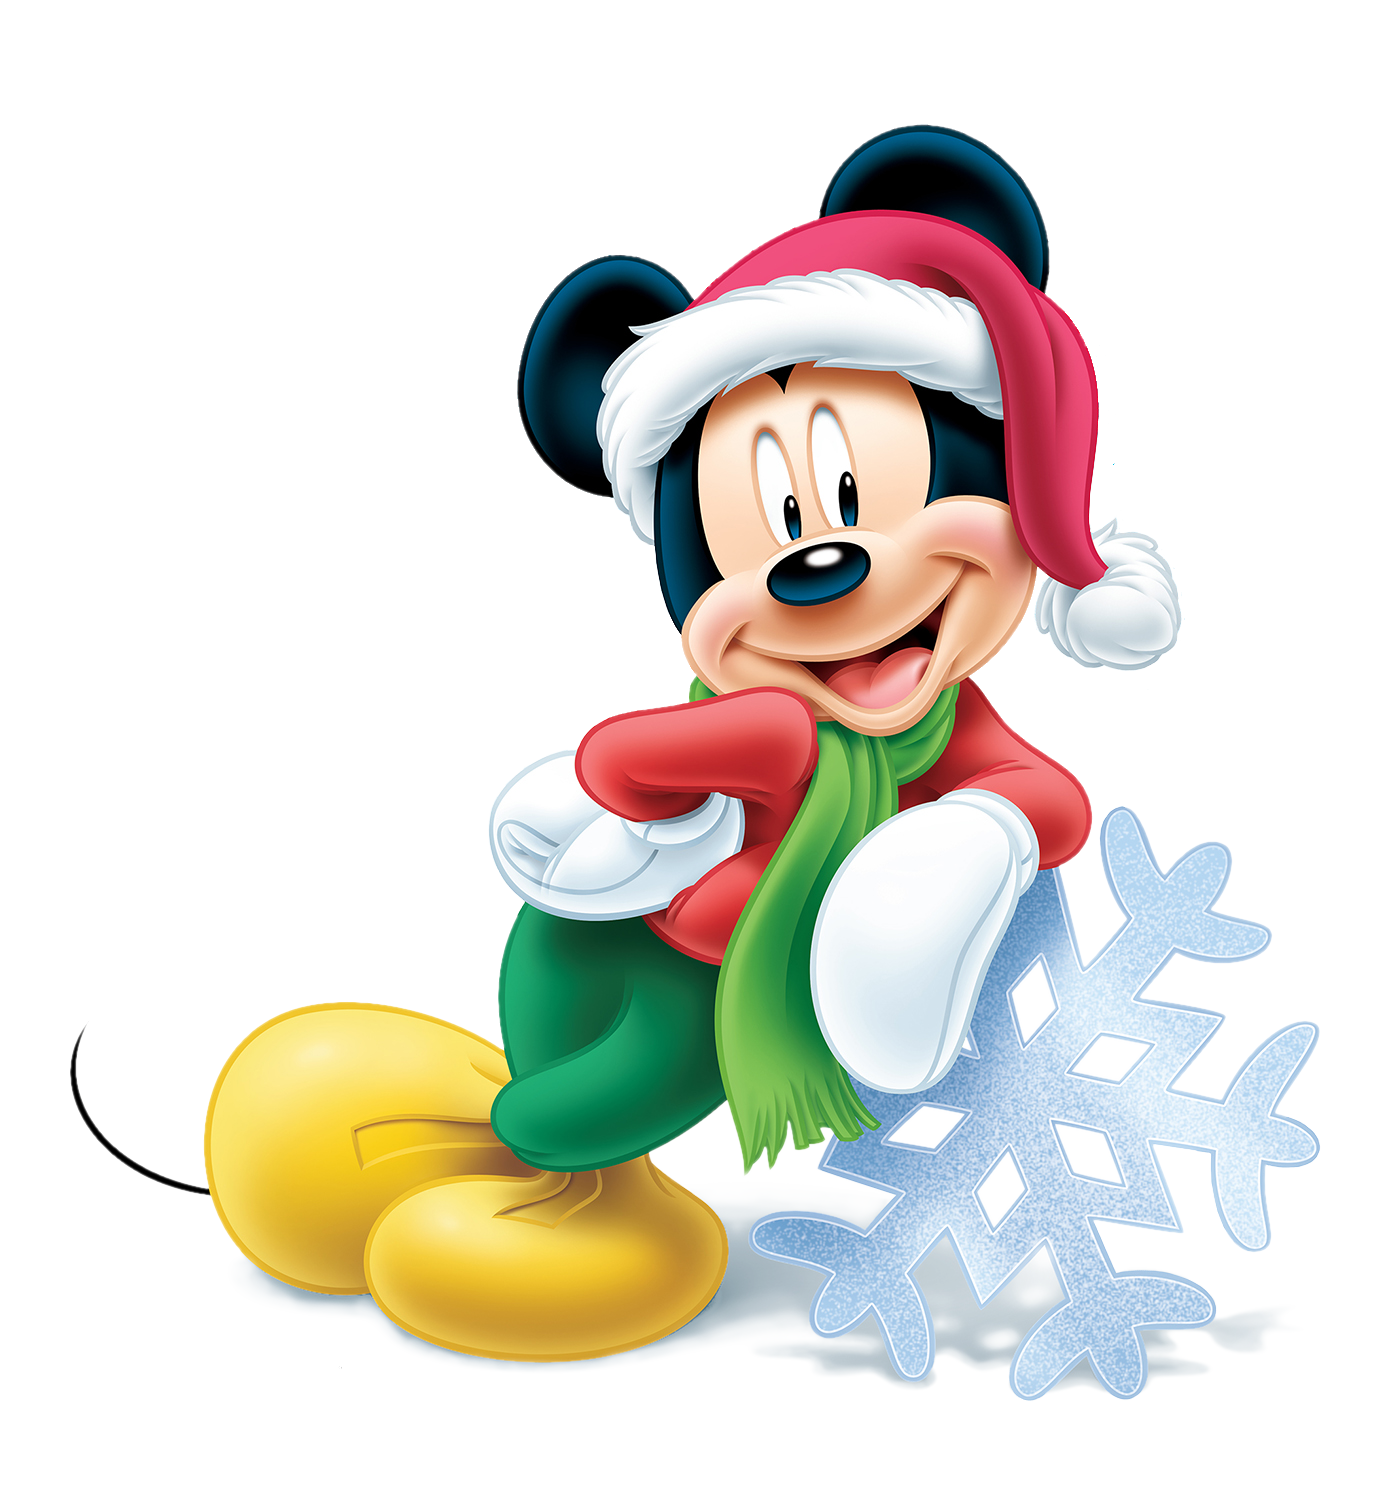 Christmas mickey png. Image render community central